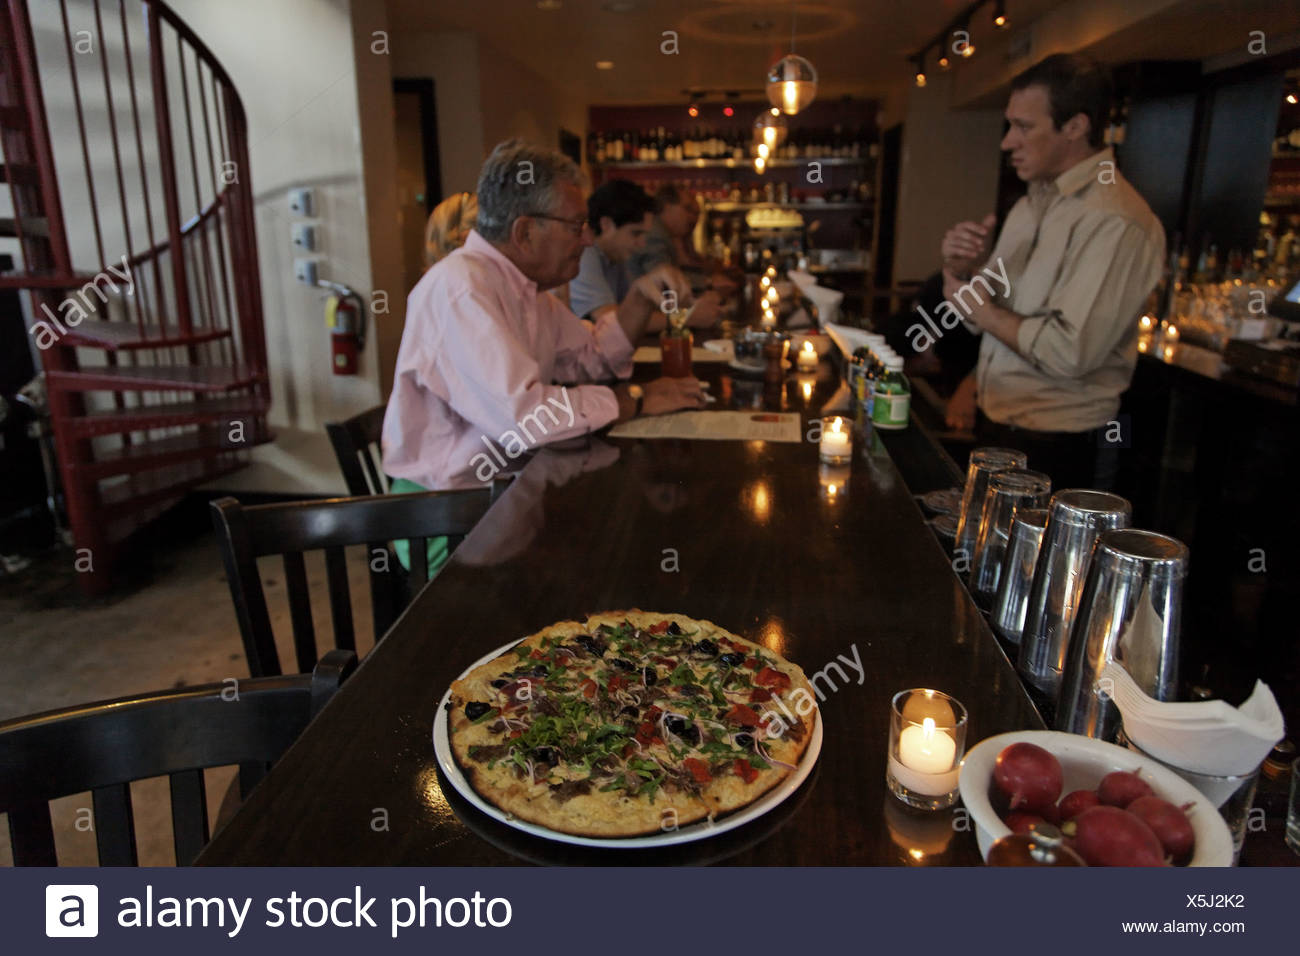 At 'Michael's Genuine Food & Drink' restaurant. - Stock Image